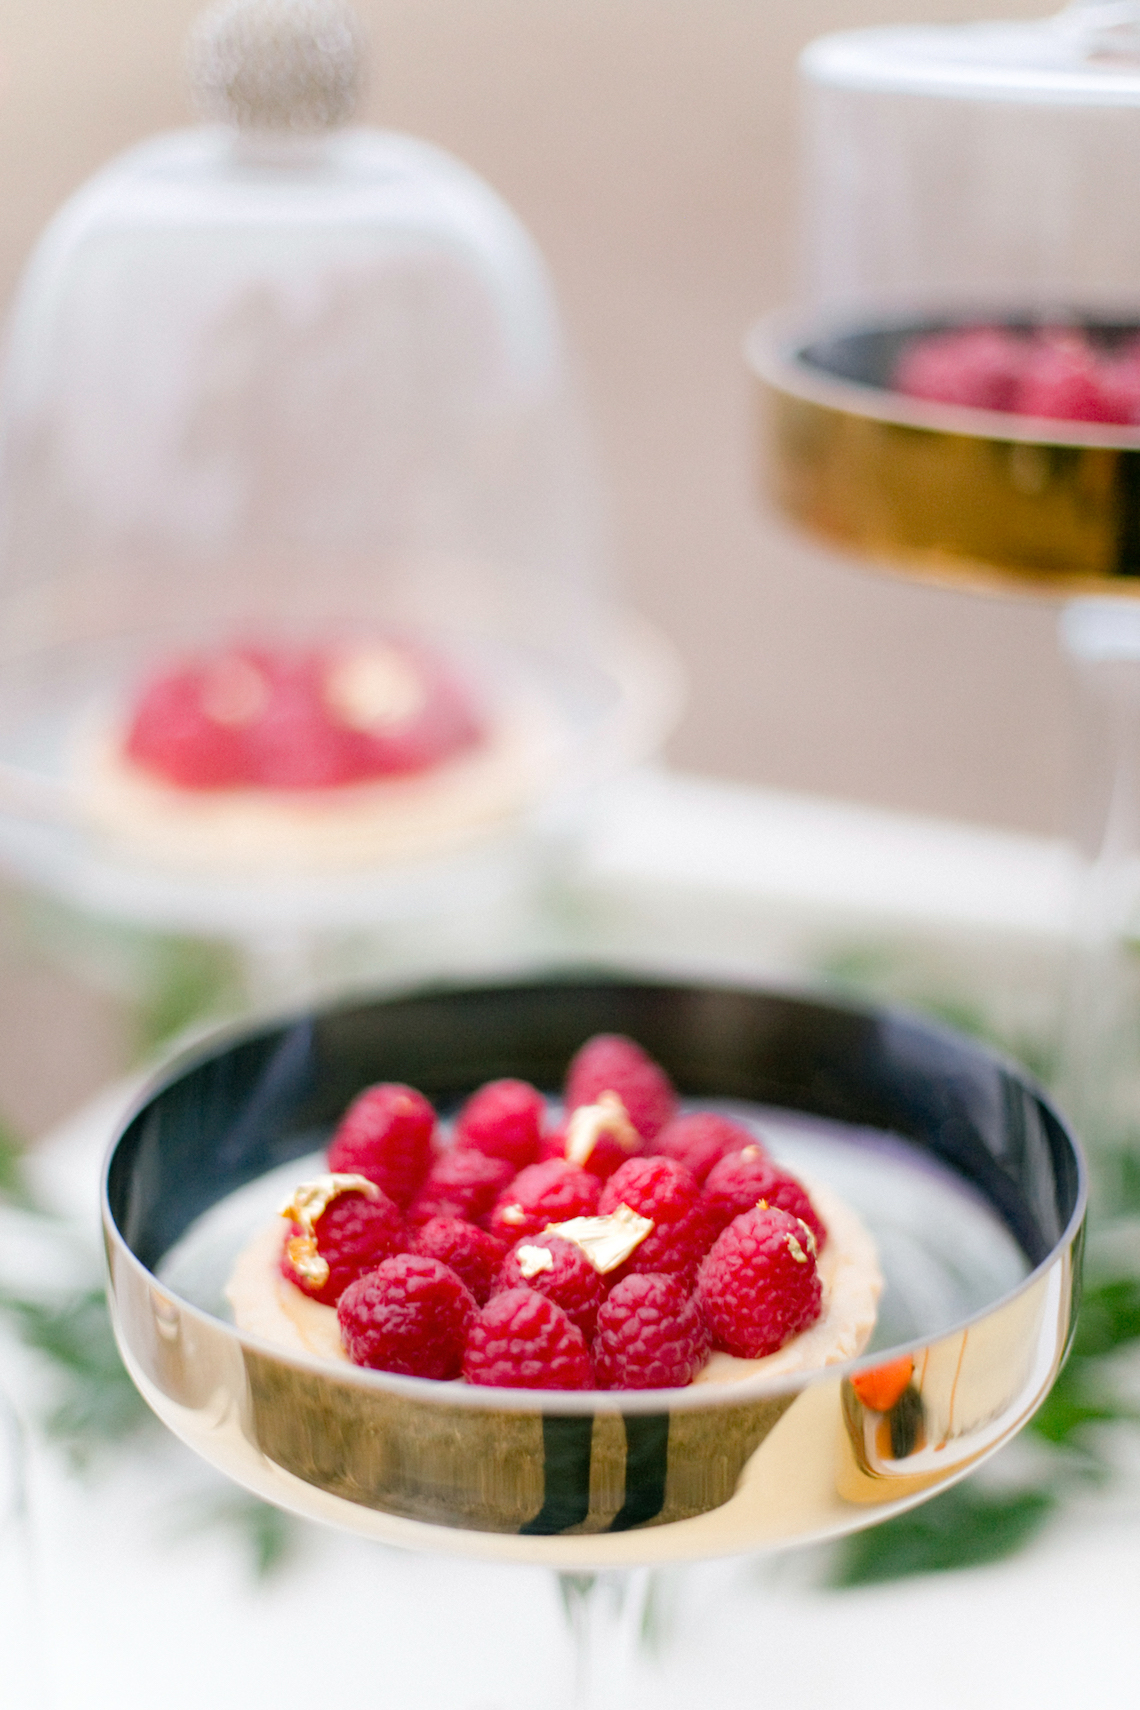 Summer Berry Wedding Ideas From The Hill Country | Jessica Chole 59